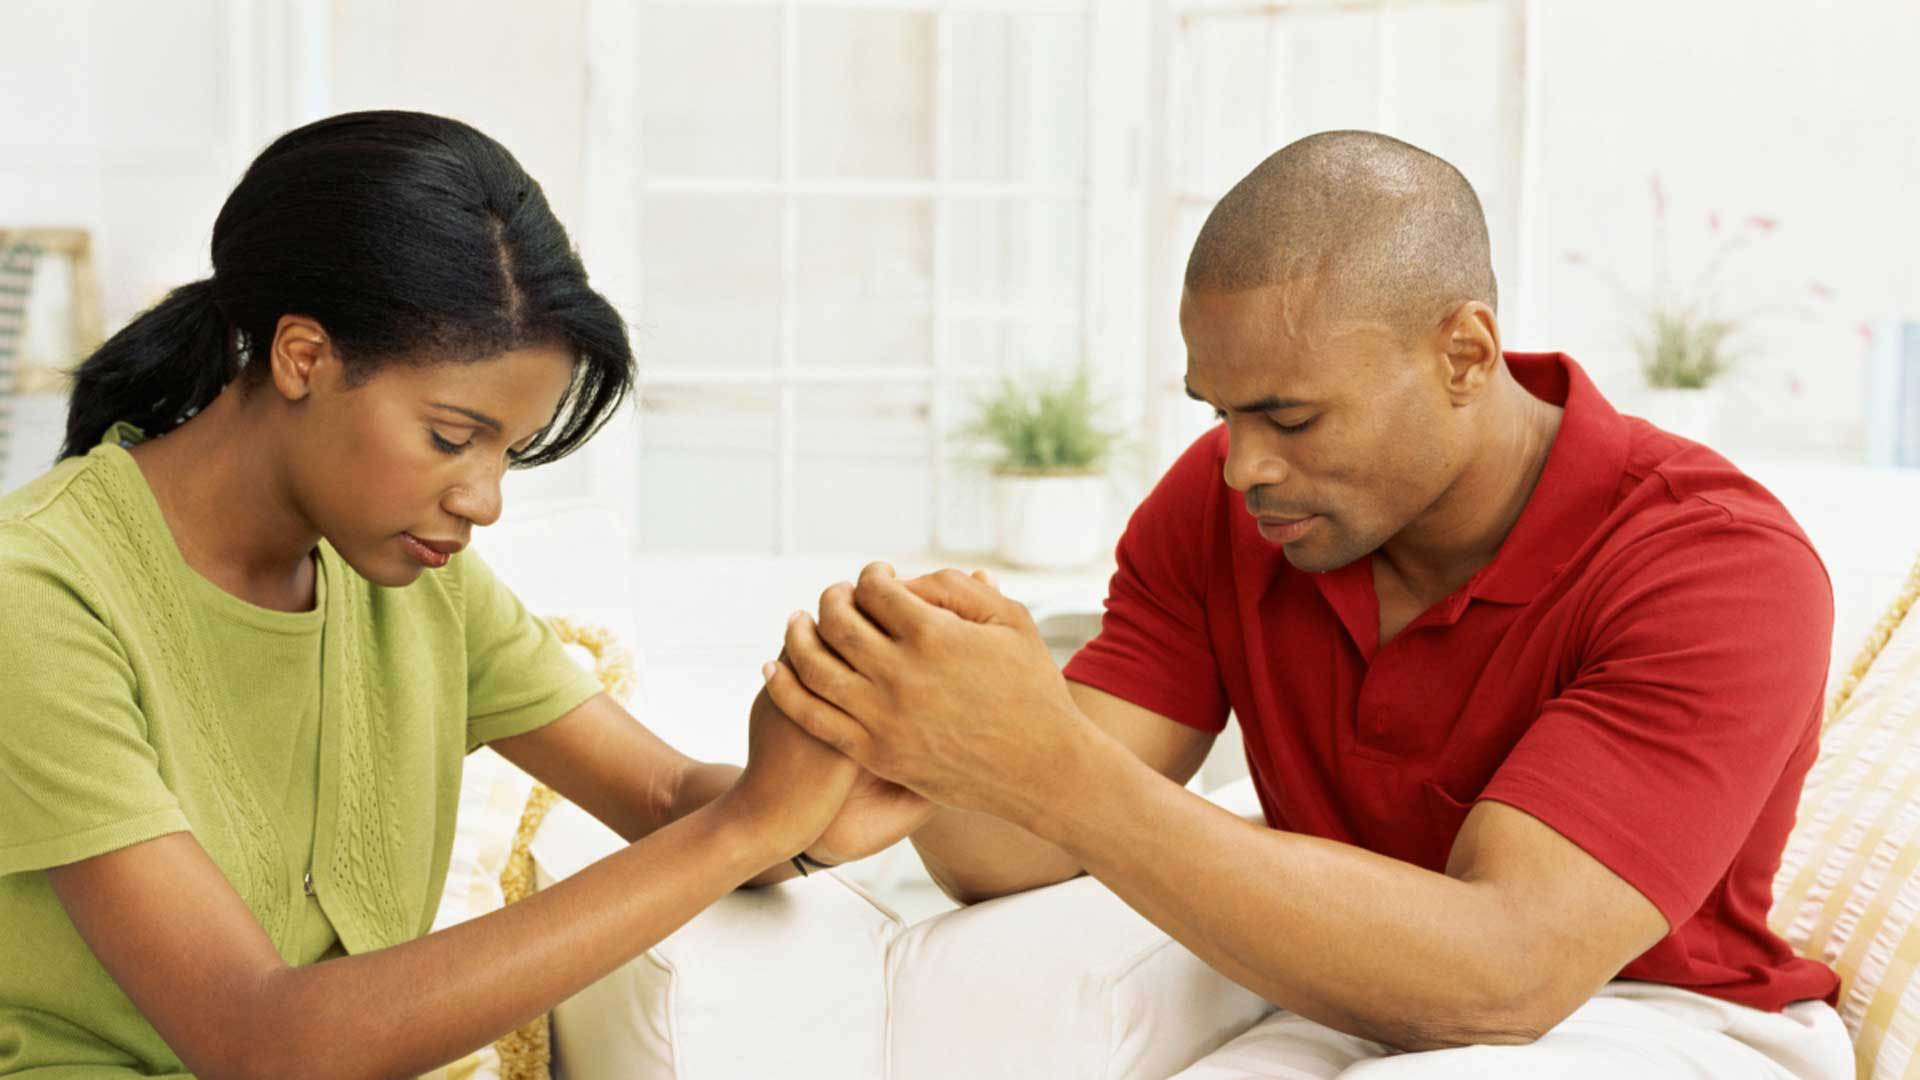 blackcouple large praying together.jpg